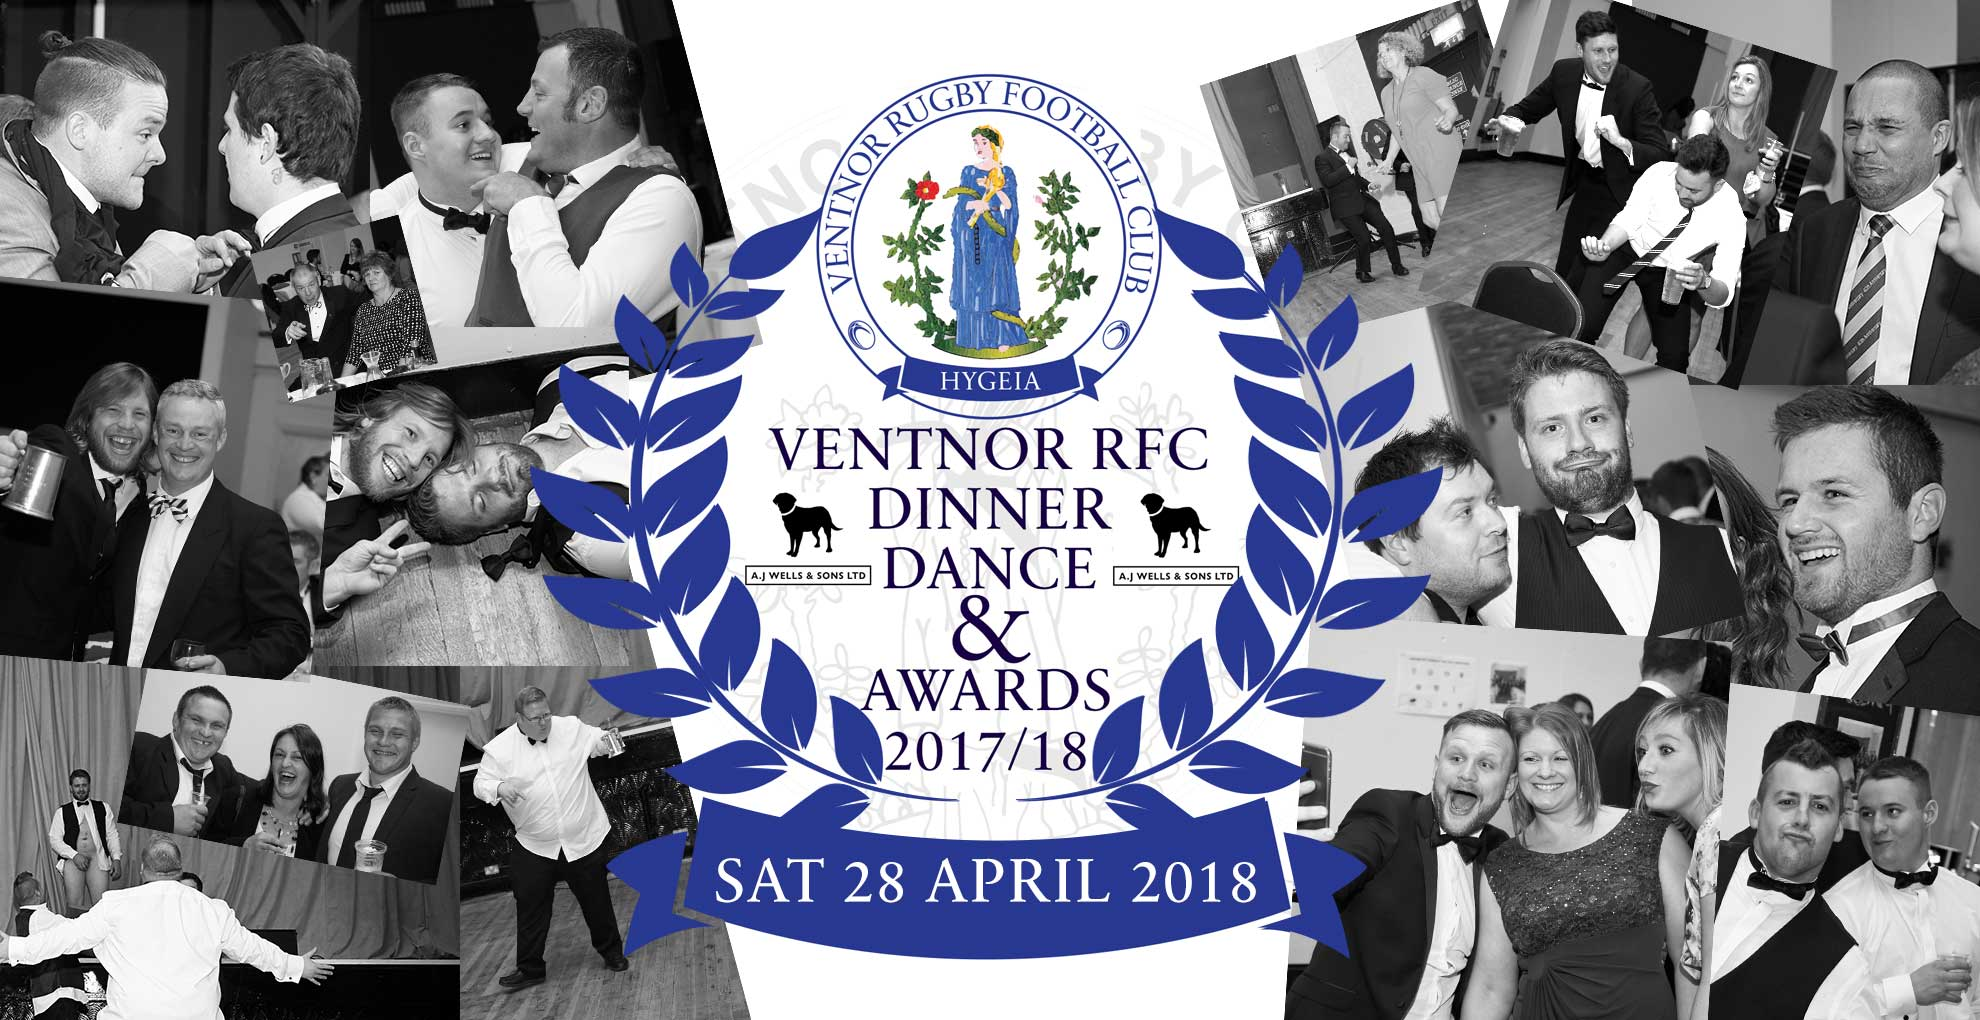 ventnor-rfc-dinner-dance-201718-fb-event